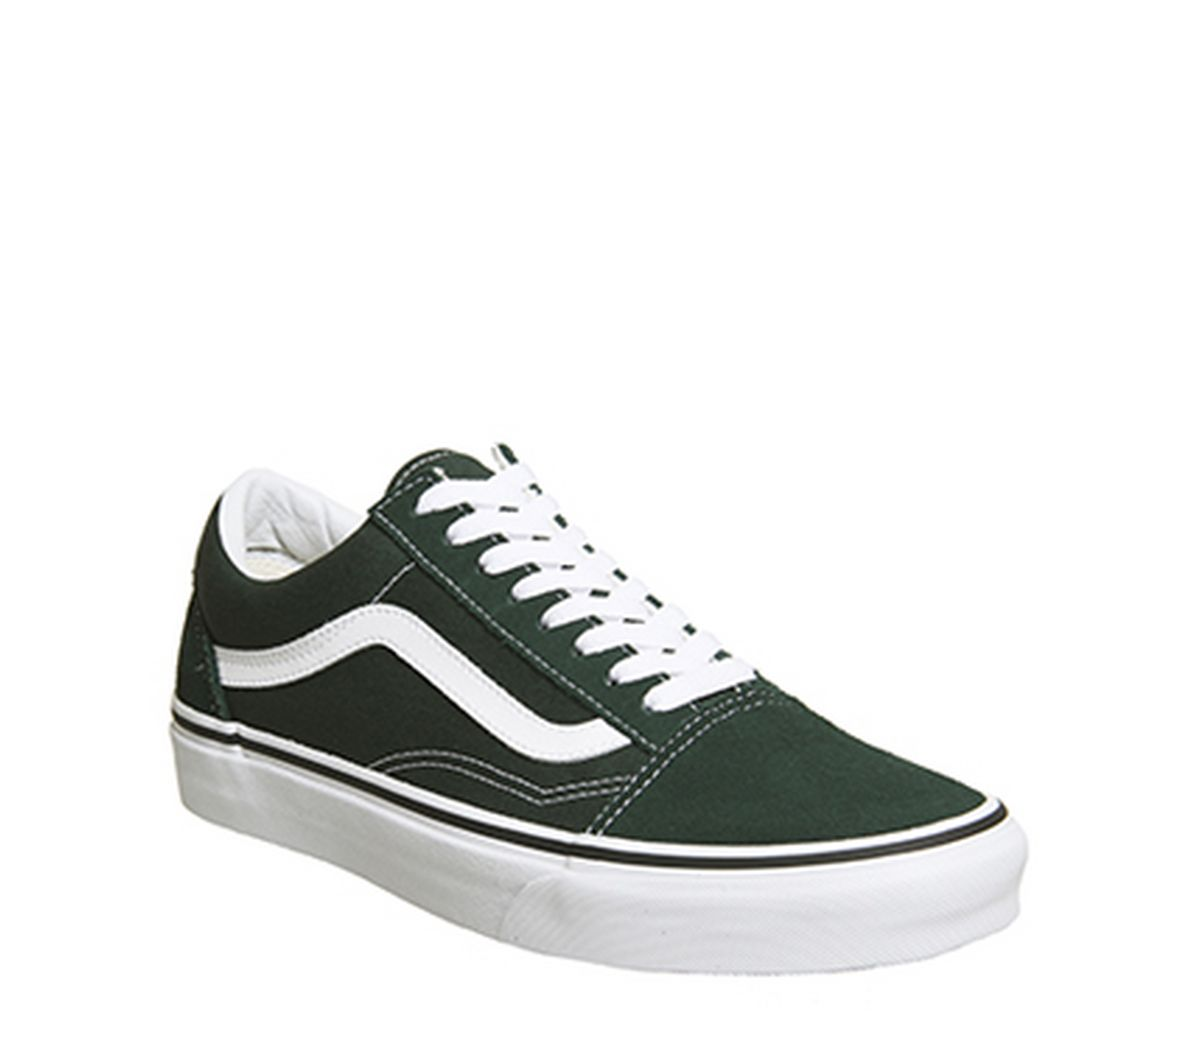 b5017eb860 Vans Old Skool Trainers Scarab Green White - Unisex Sports